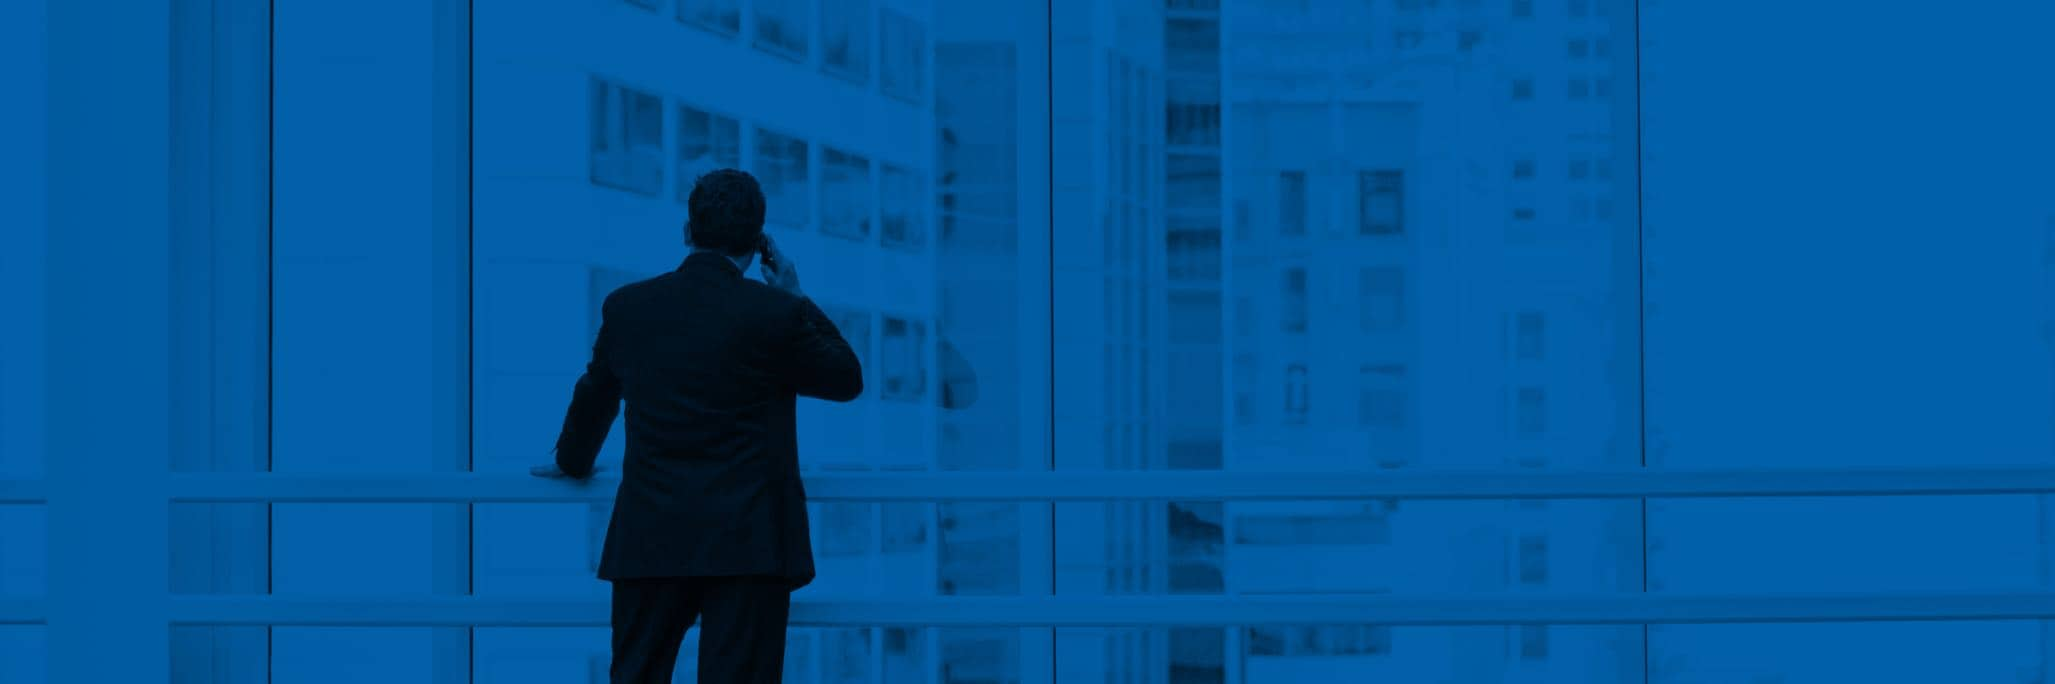 Man on phone looking out window in high-rise office building